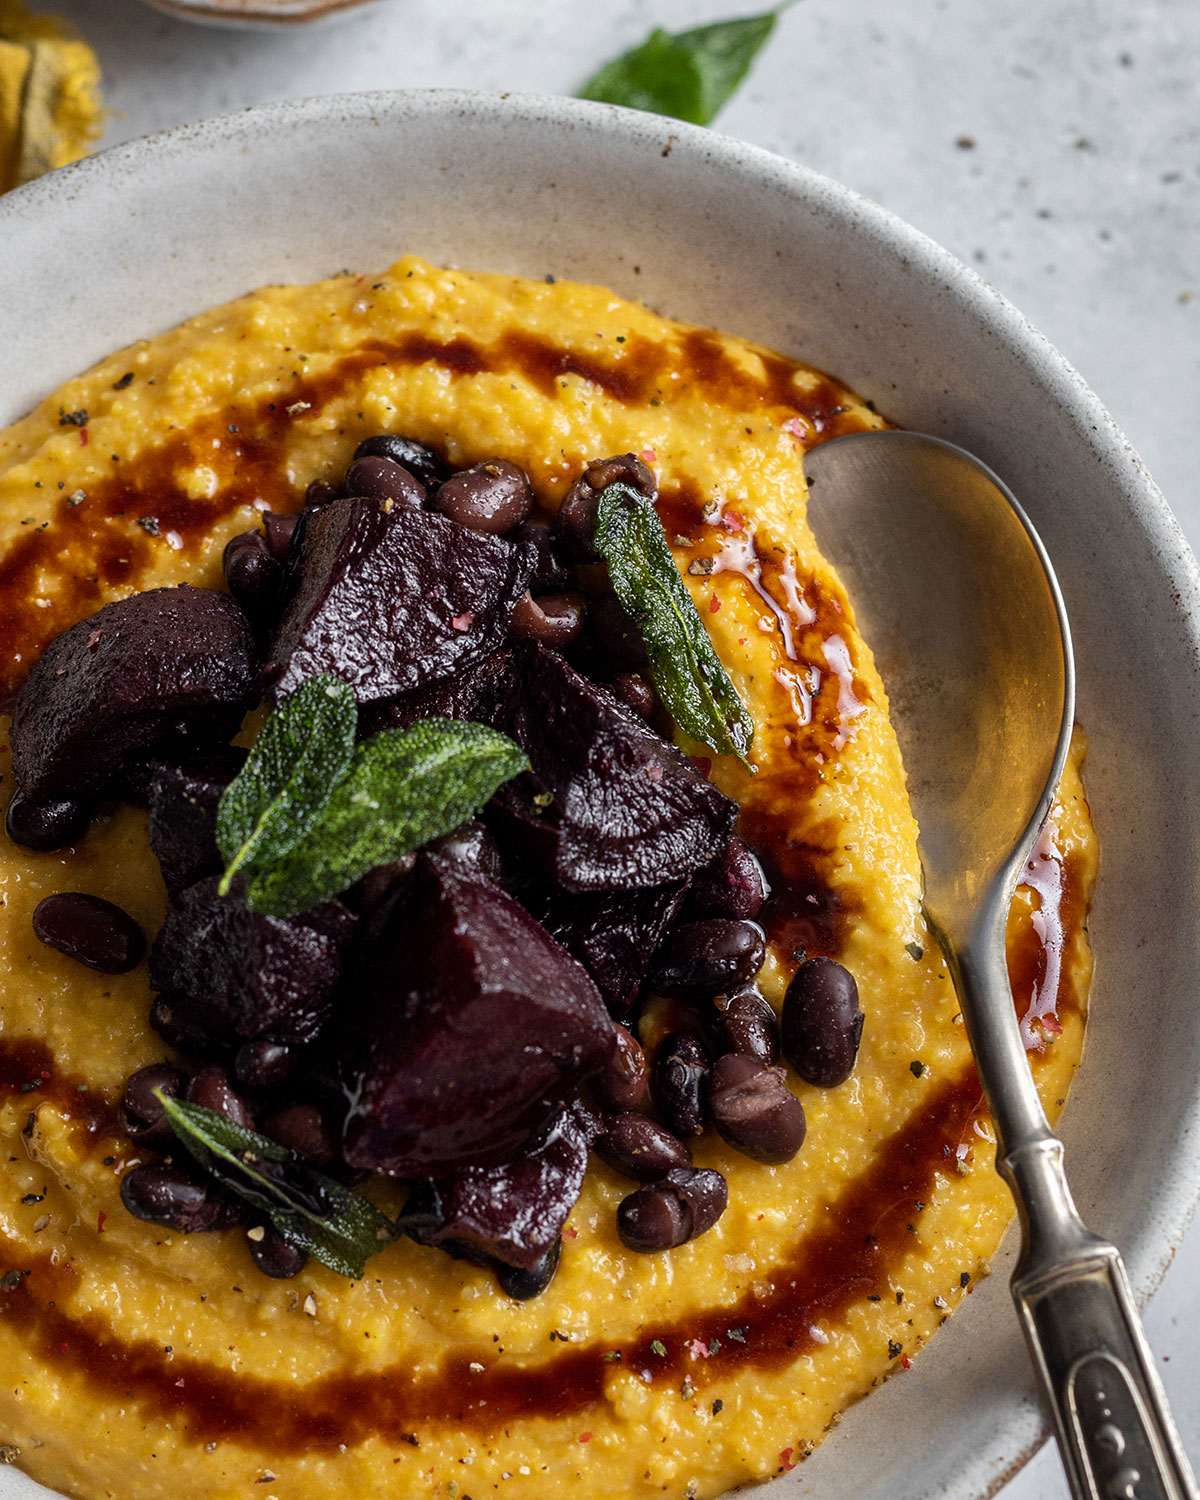 A close-up of a white bowl filled with creamy pumpkin polenta and topped with roasted beetroot in a balsamic sauce together with black beans. There's a spoon in the bowl.